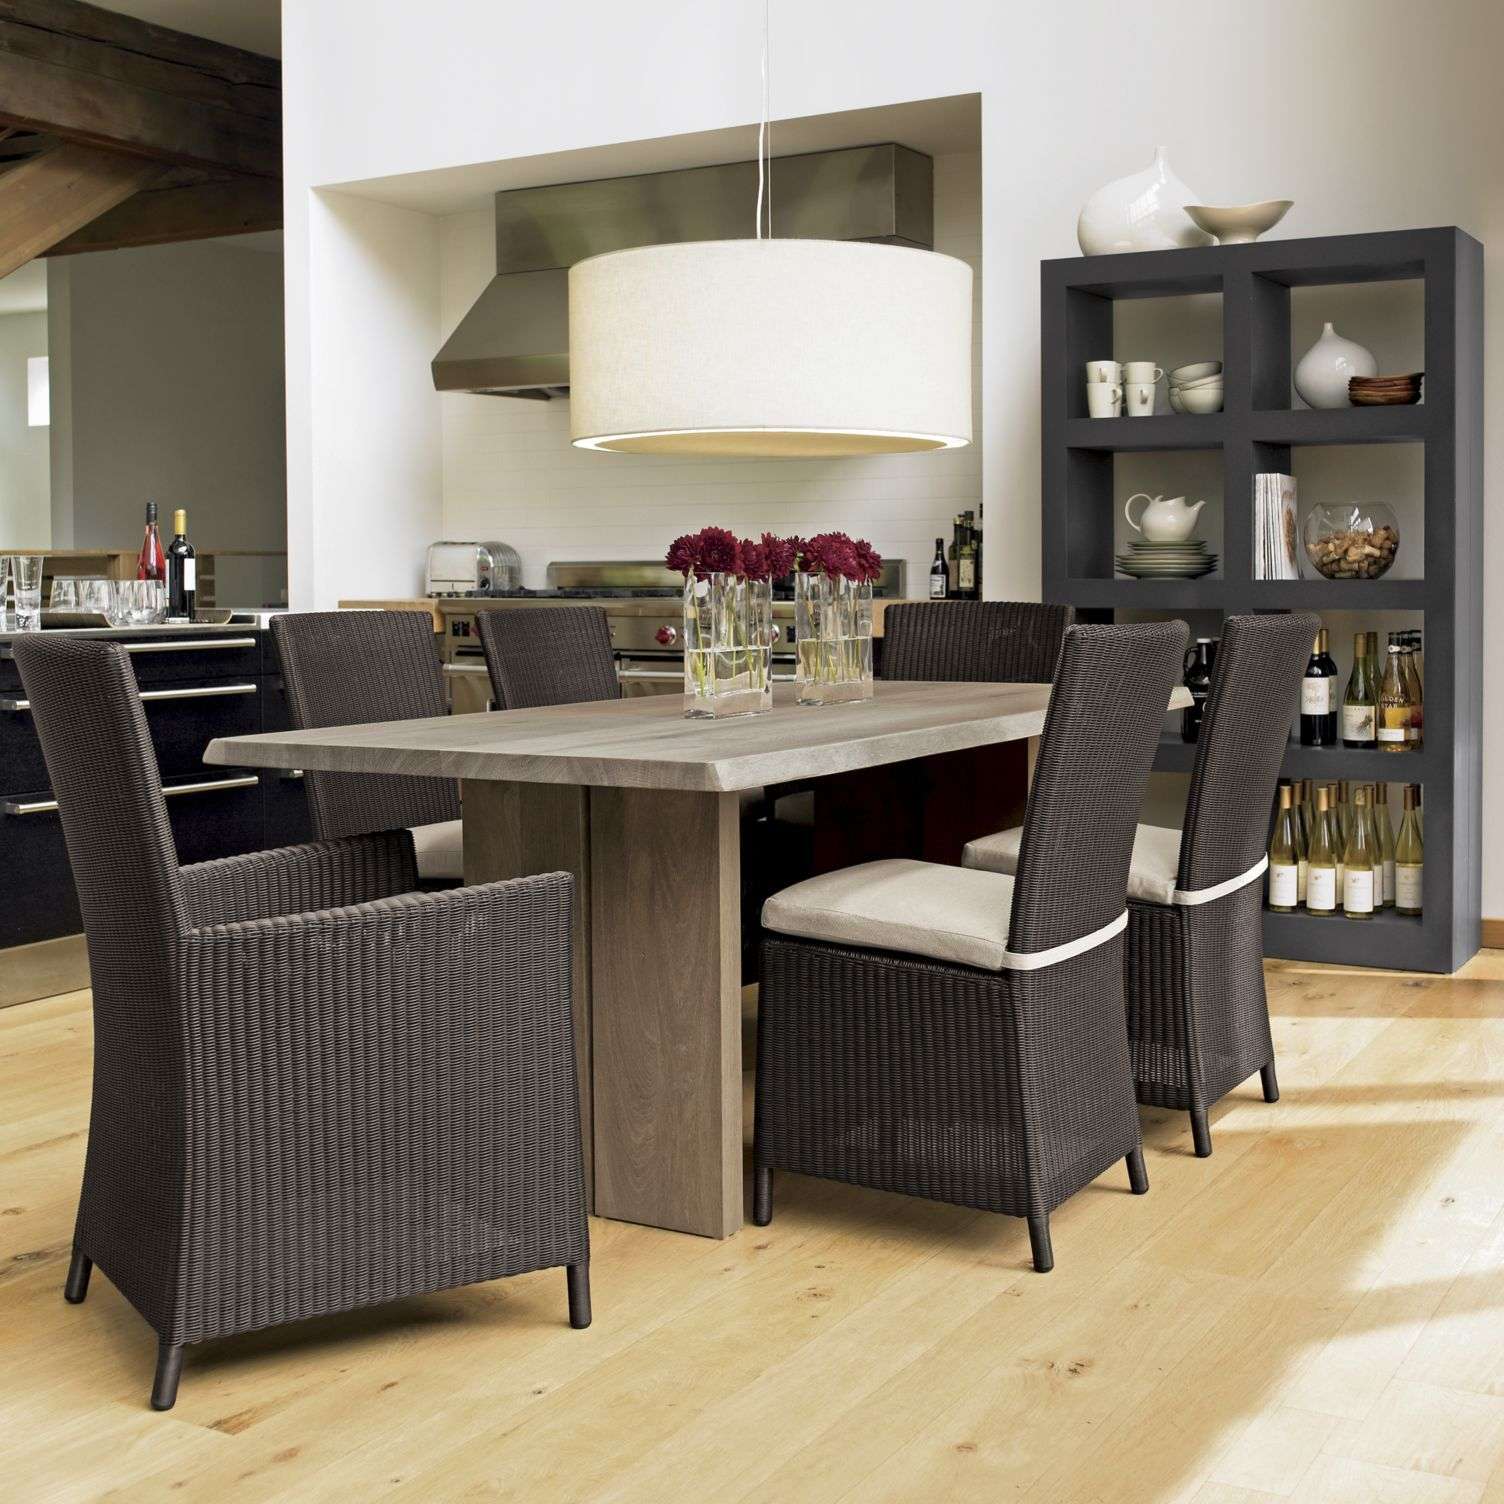 Dakota from crate and barrel with dark chairs and sideboard dining